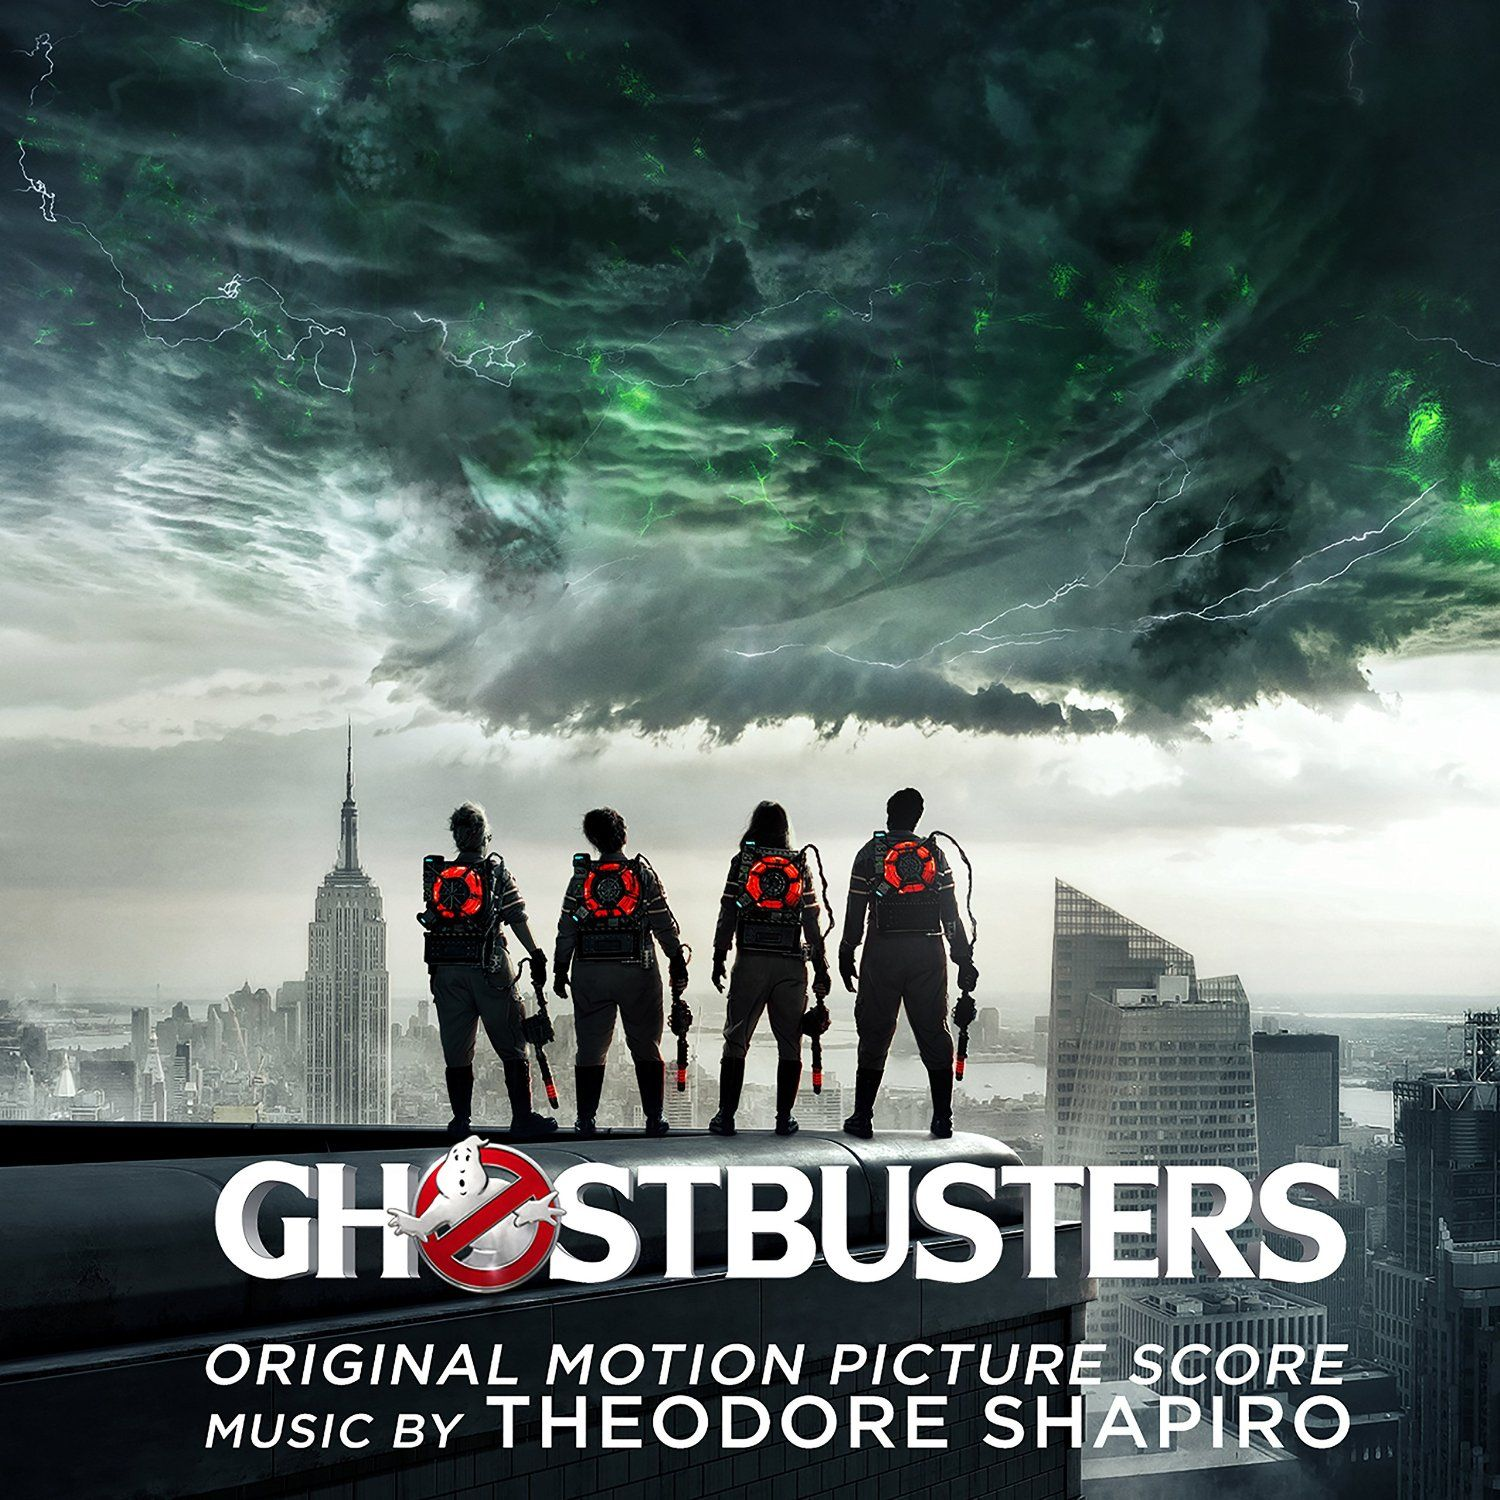 Sony Classical proudly announces the release of Ghostbusters (Original Motion Picture Score) to accompany Sony Pictures' highly anticipated feature film Ghos...